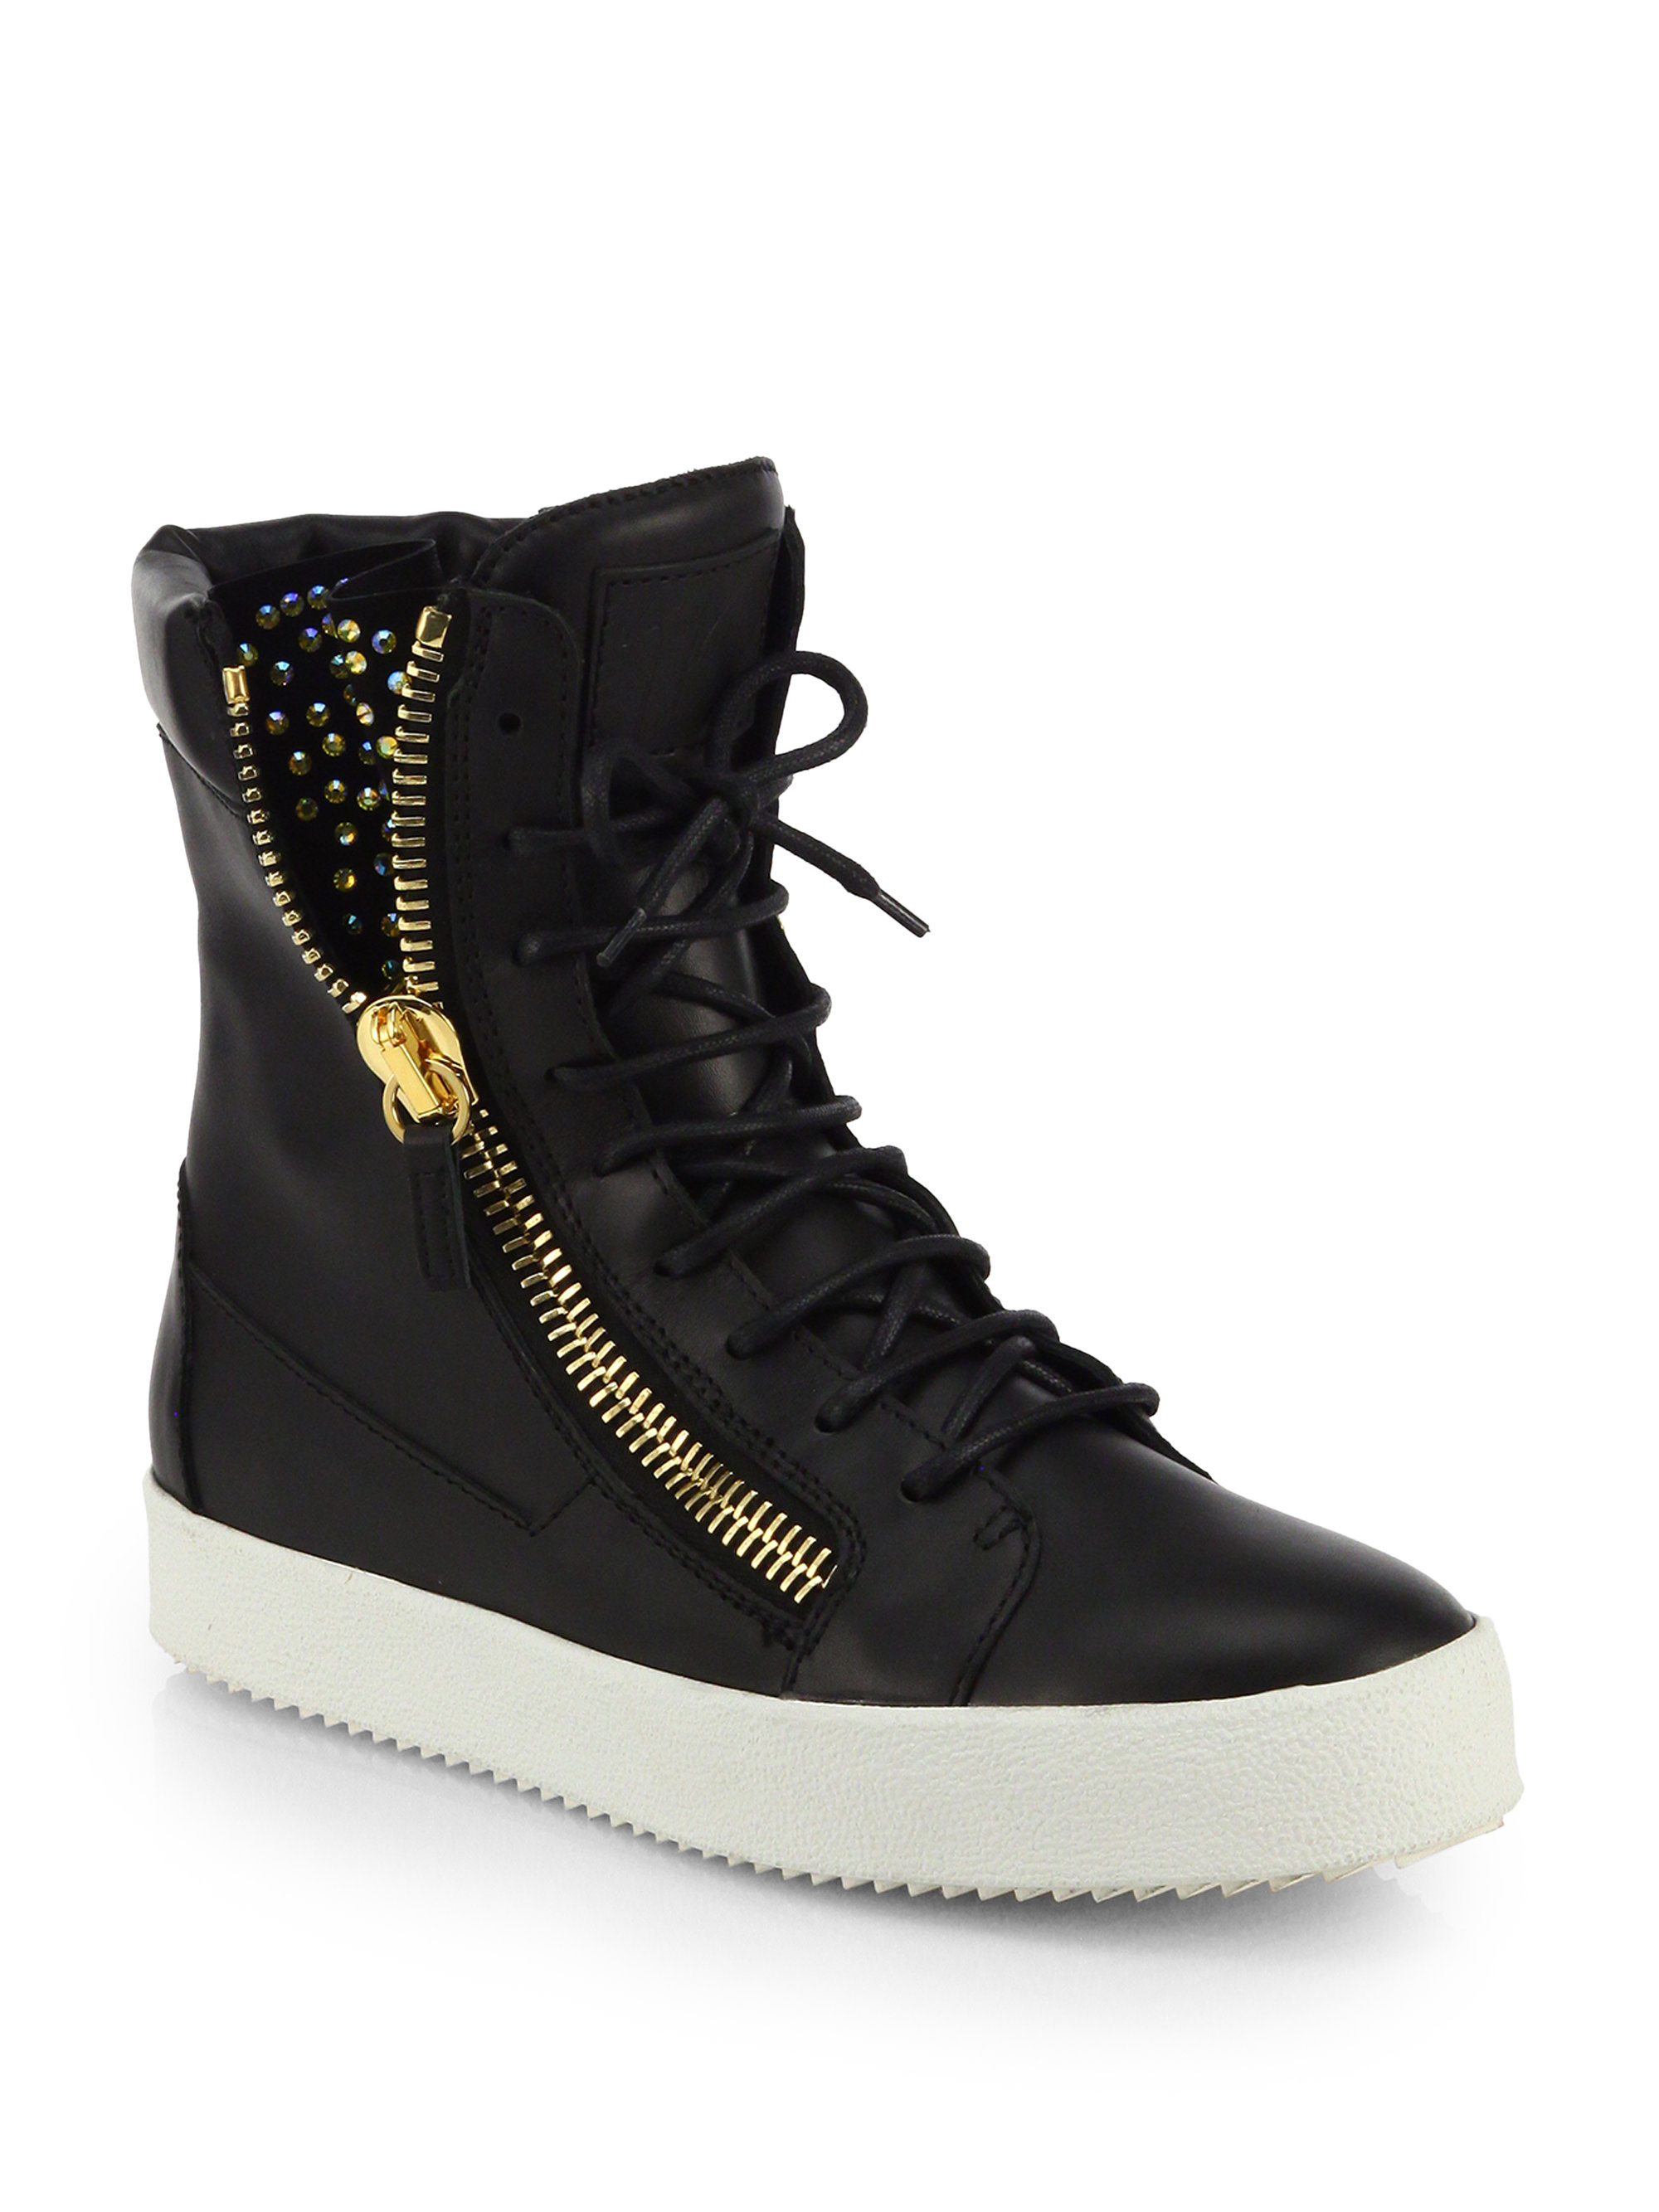 giuseppe zanotti studded leather high top sneakers in